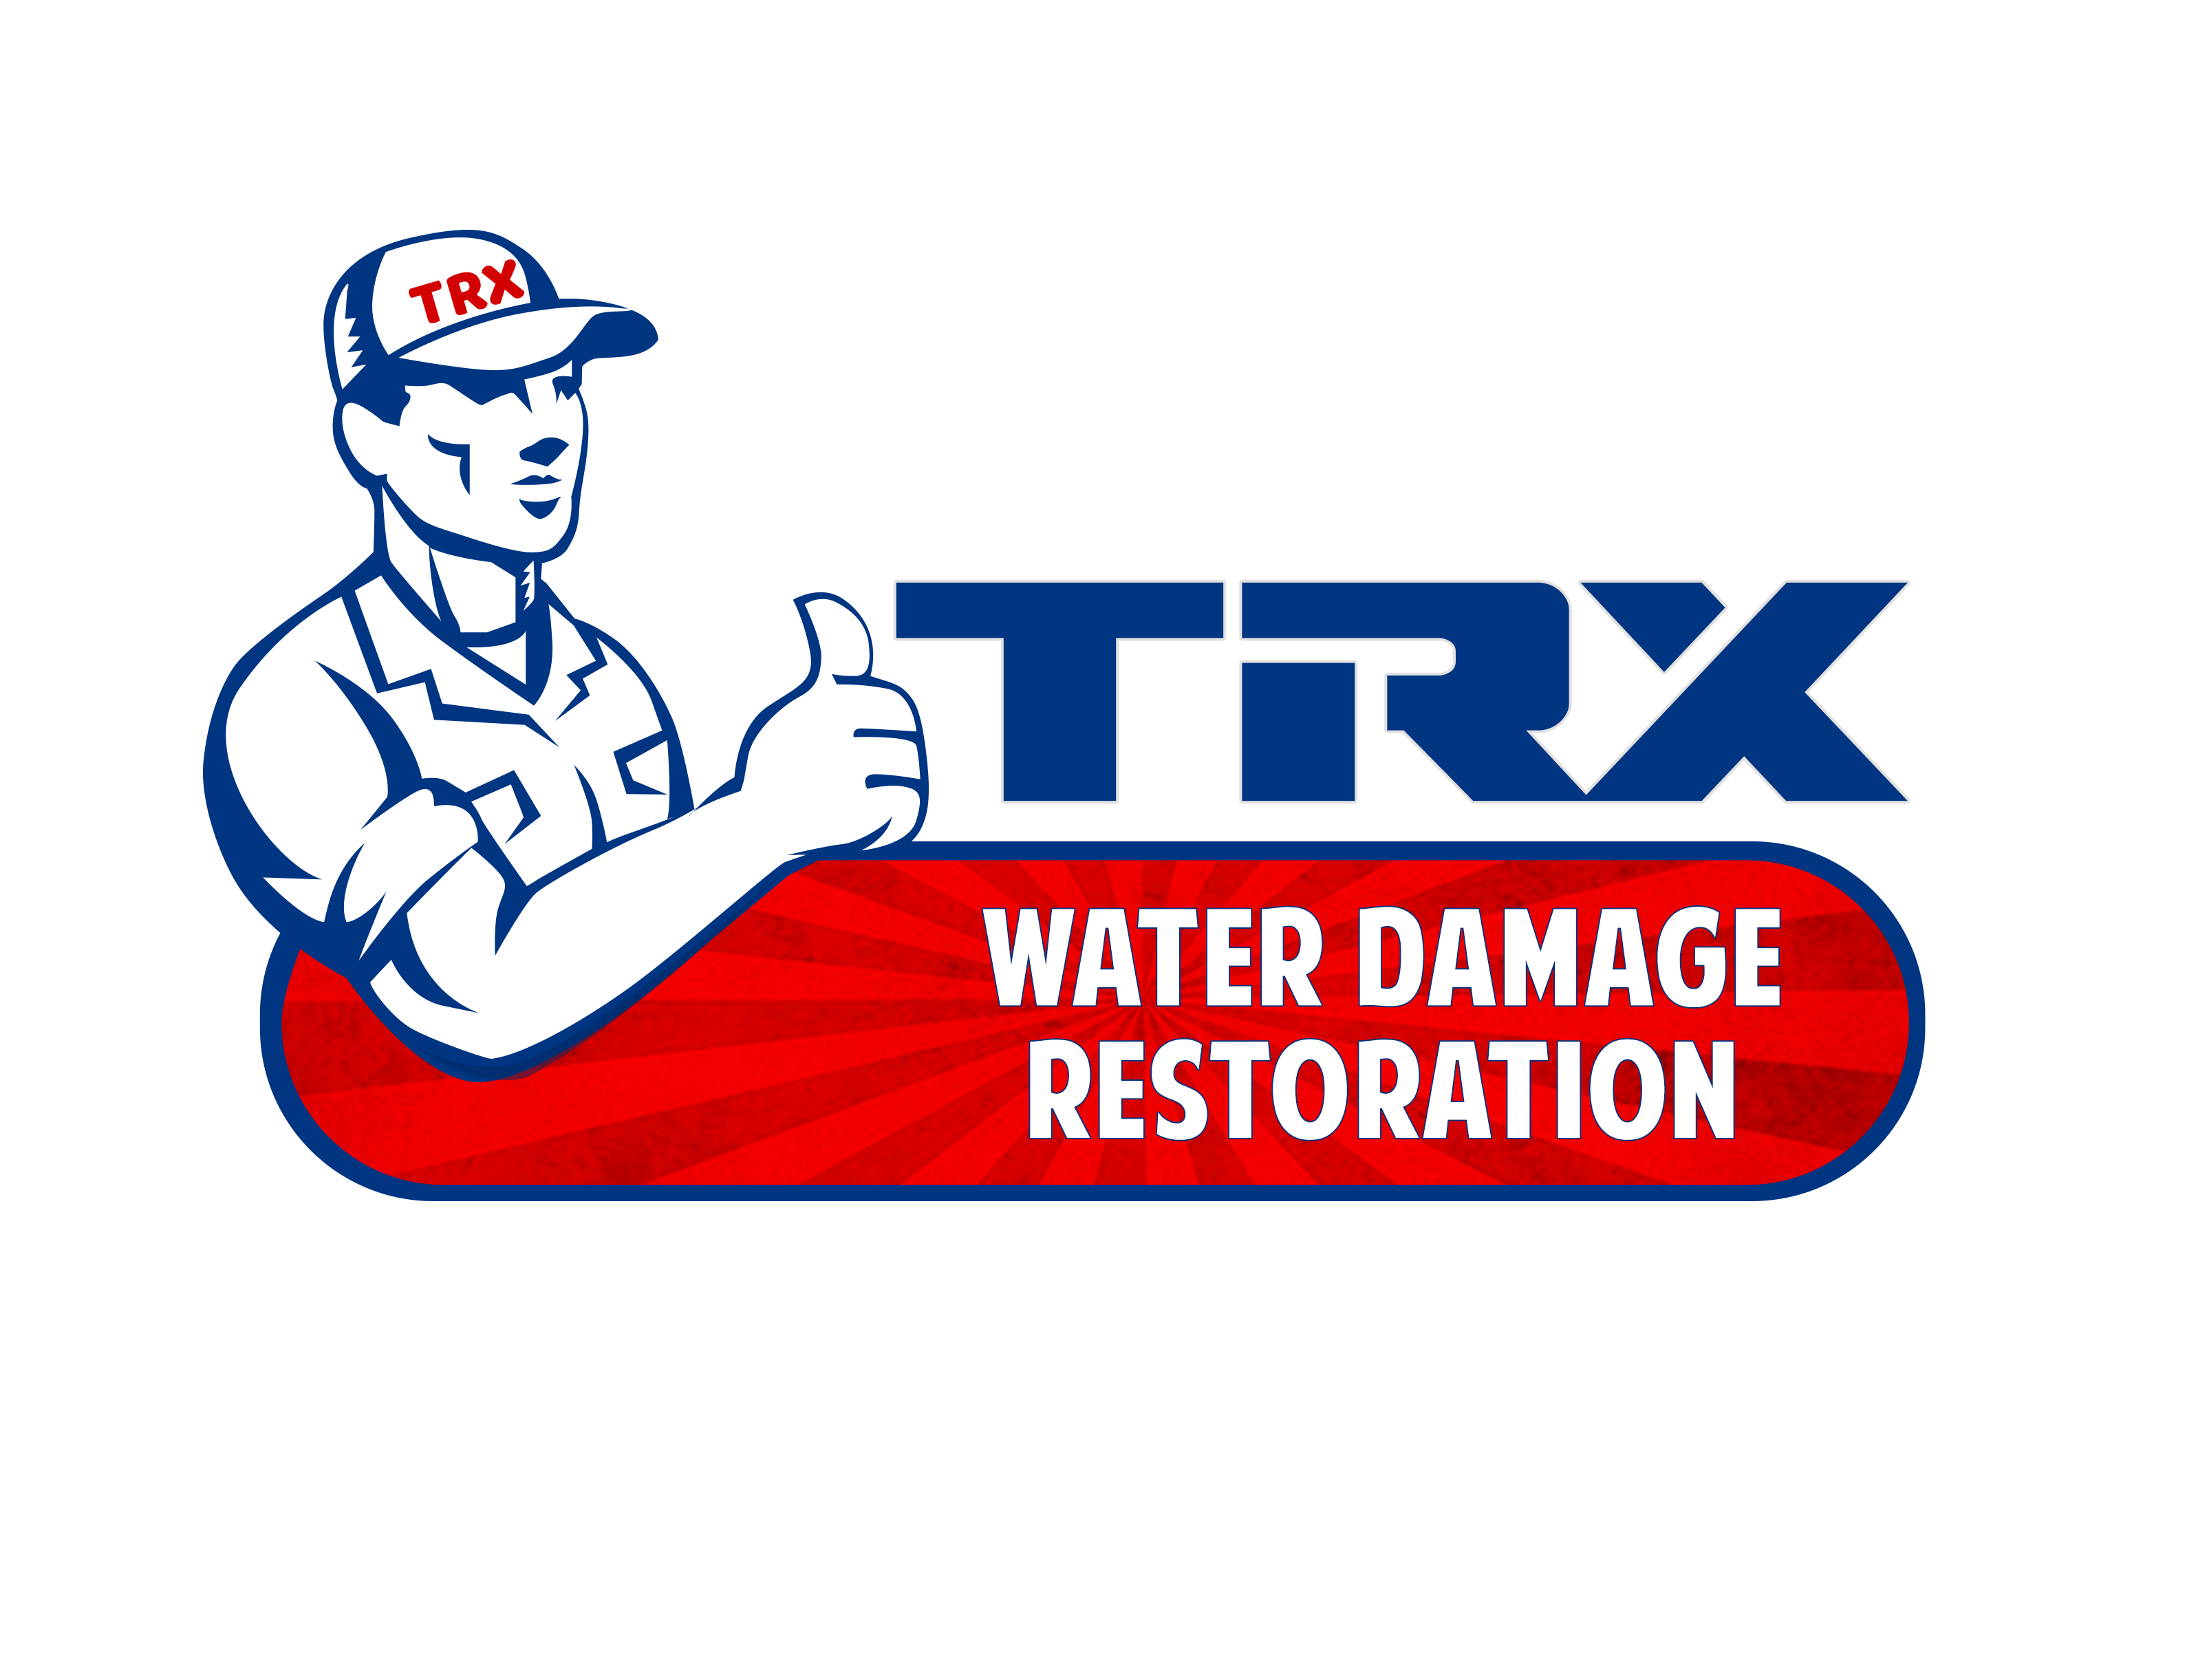 https://www.trxwaterdamagerestoration.com/wp-content/themes/Avada/assets/images/logo.png